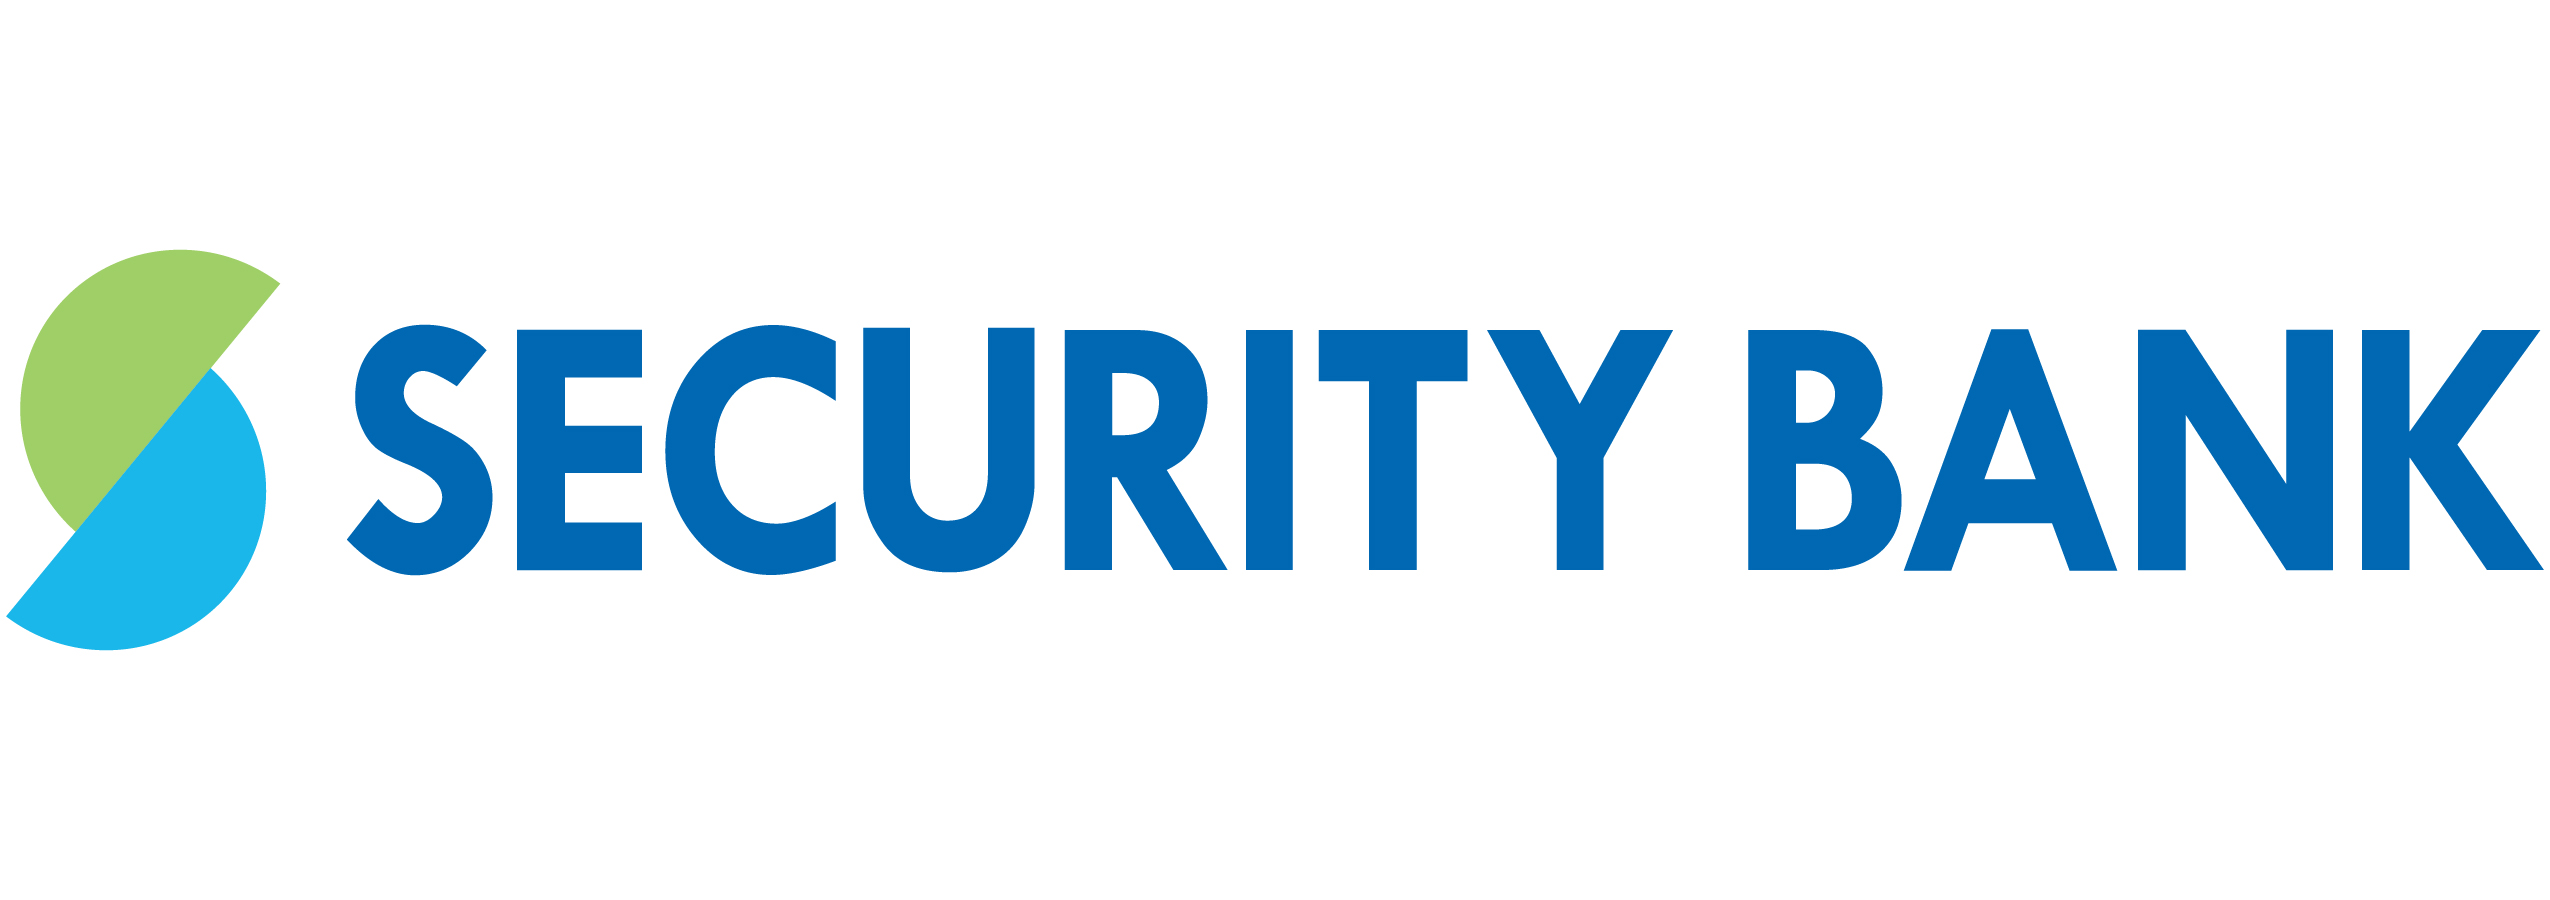 File The Security Bank Logo 1 Jpg Wikimedia Commons